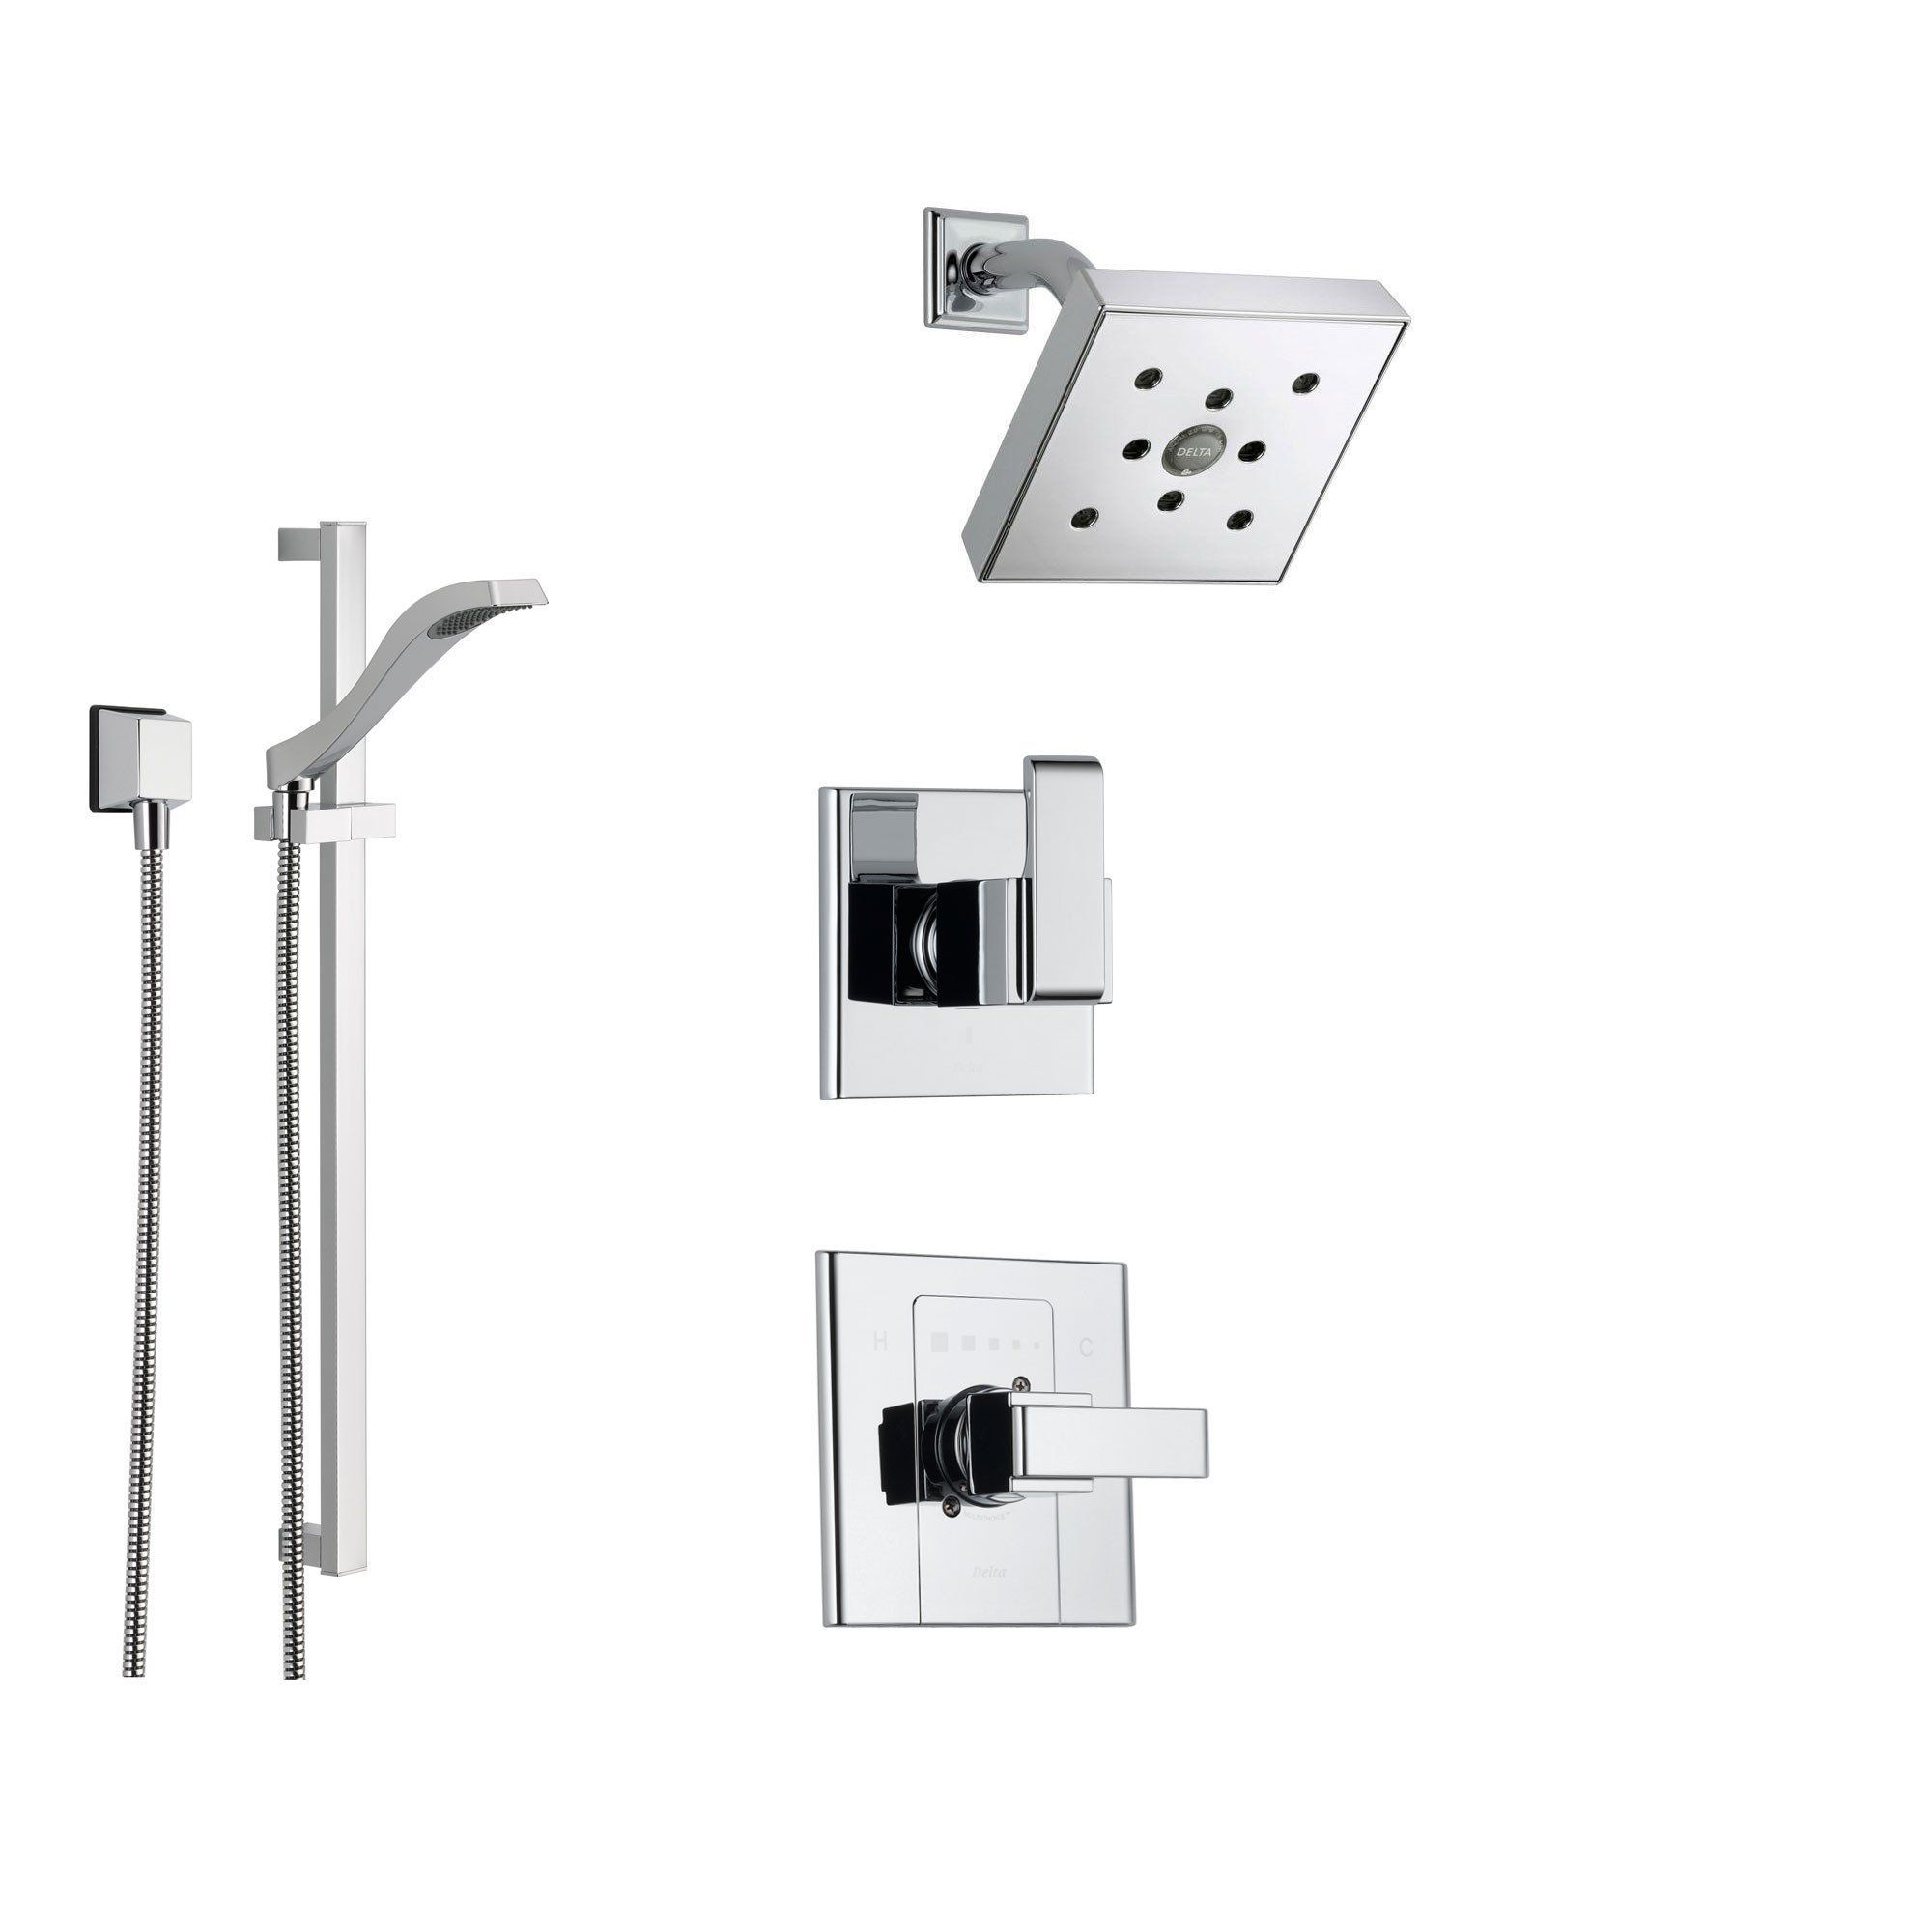 Delta Arzo Chrome Shower System With Normal Shower Handle, 3 Setting  Diverter, Modern Square Showerhead, And Handheld Shower SS148684